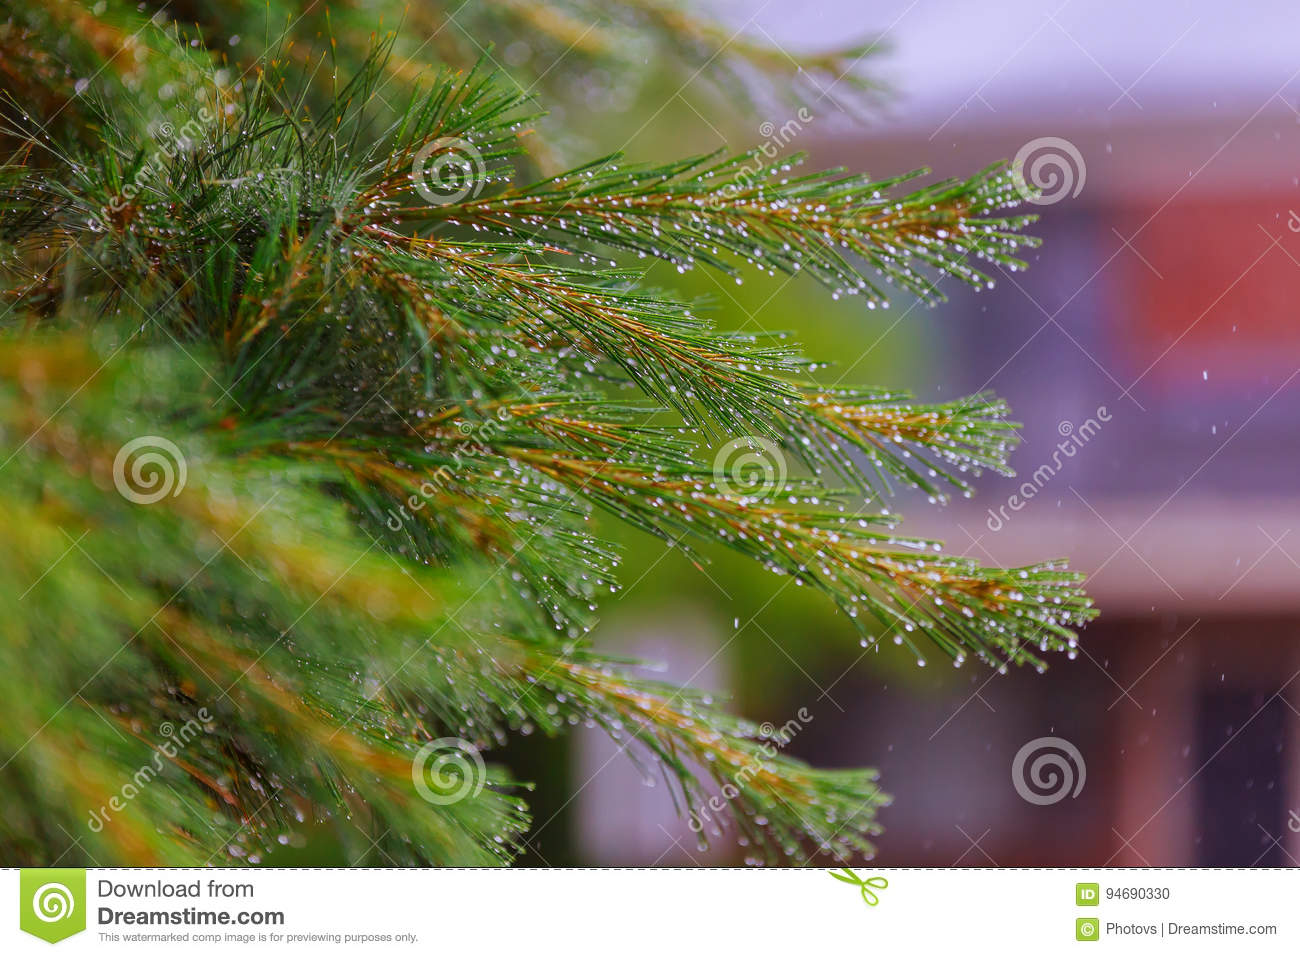 A tender branch of a small pine tree with drops of water in a row after spring rain close up.